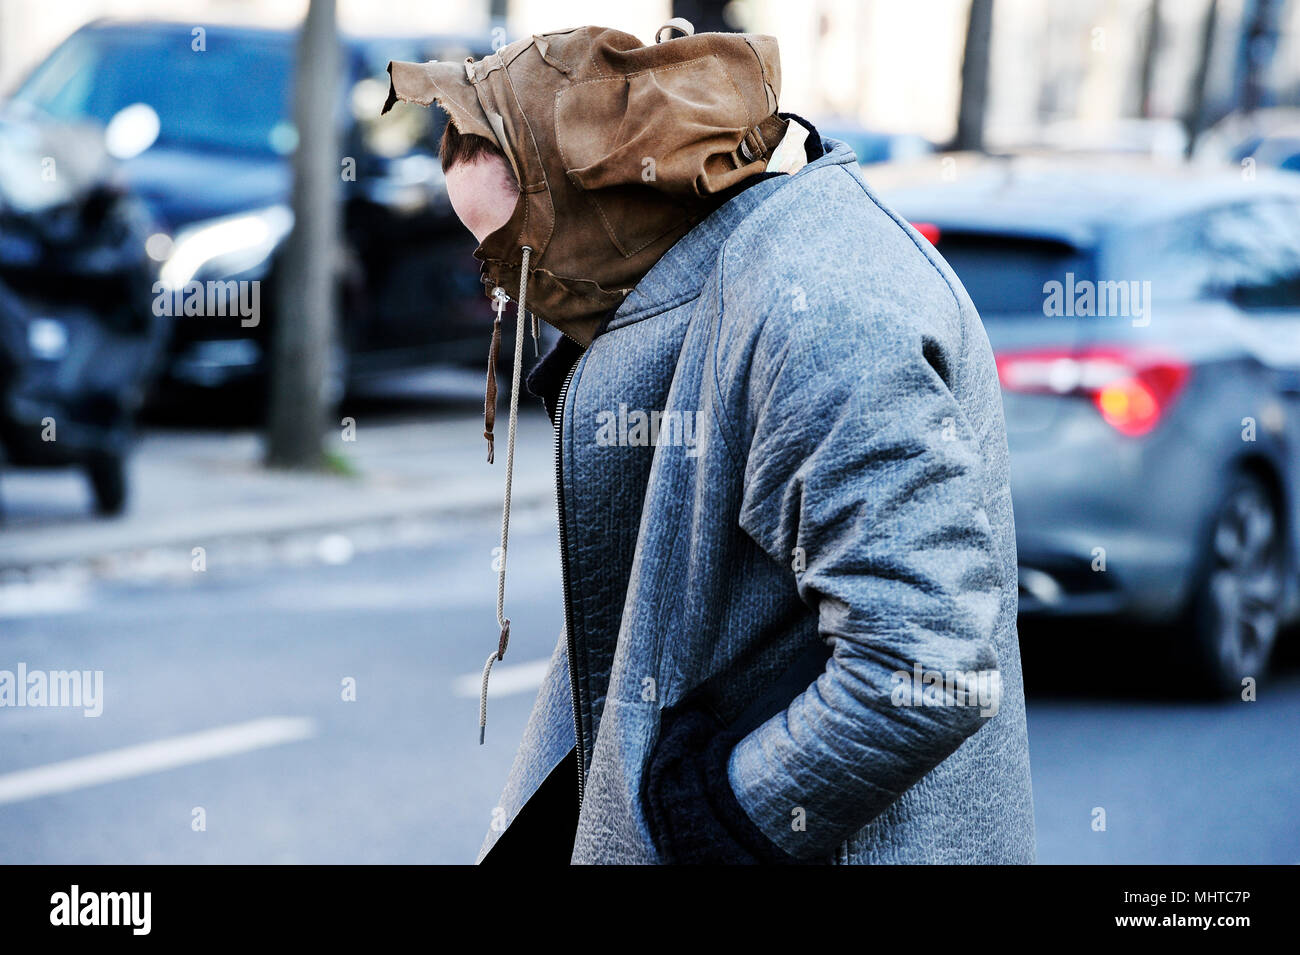 Man with a hood - Paris - France Stock Photo